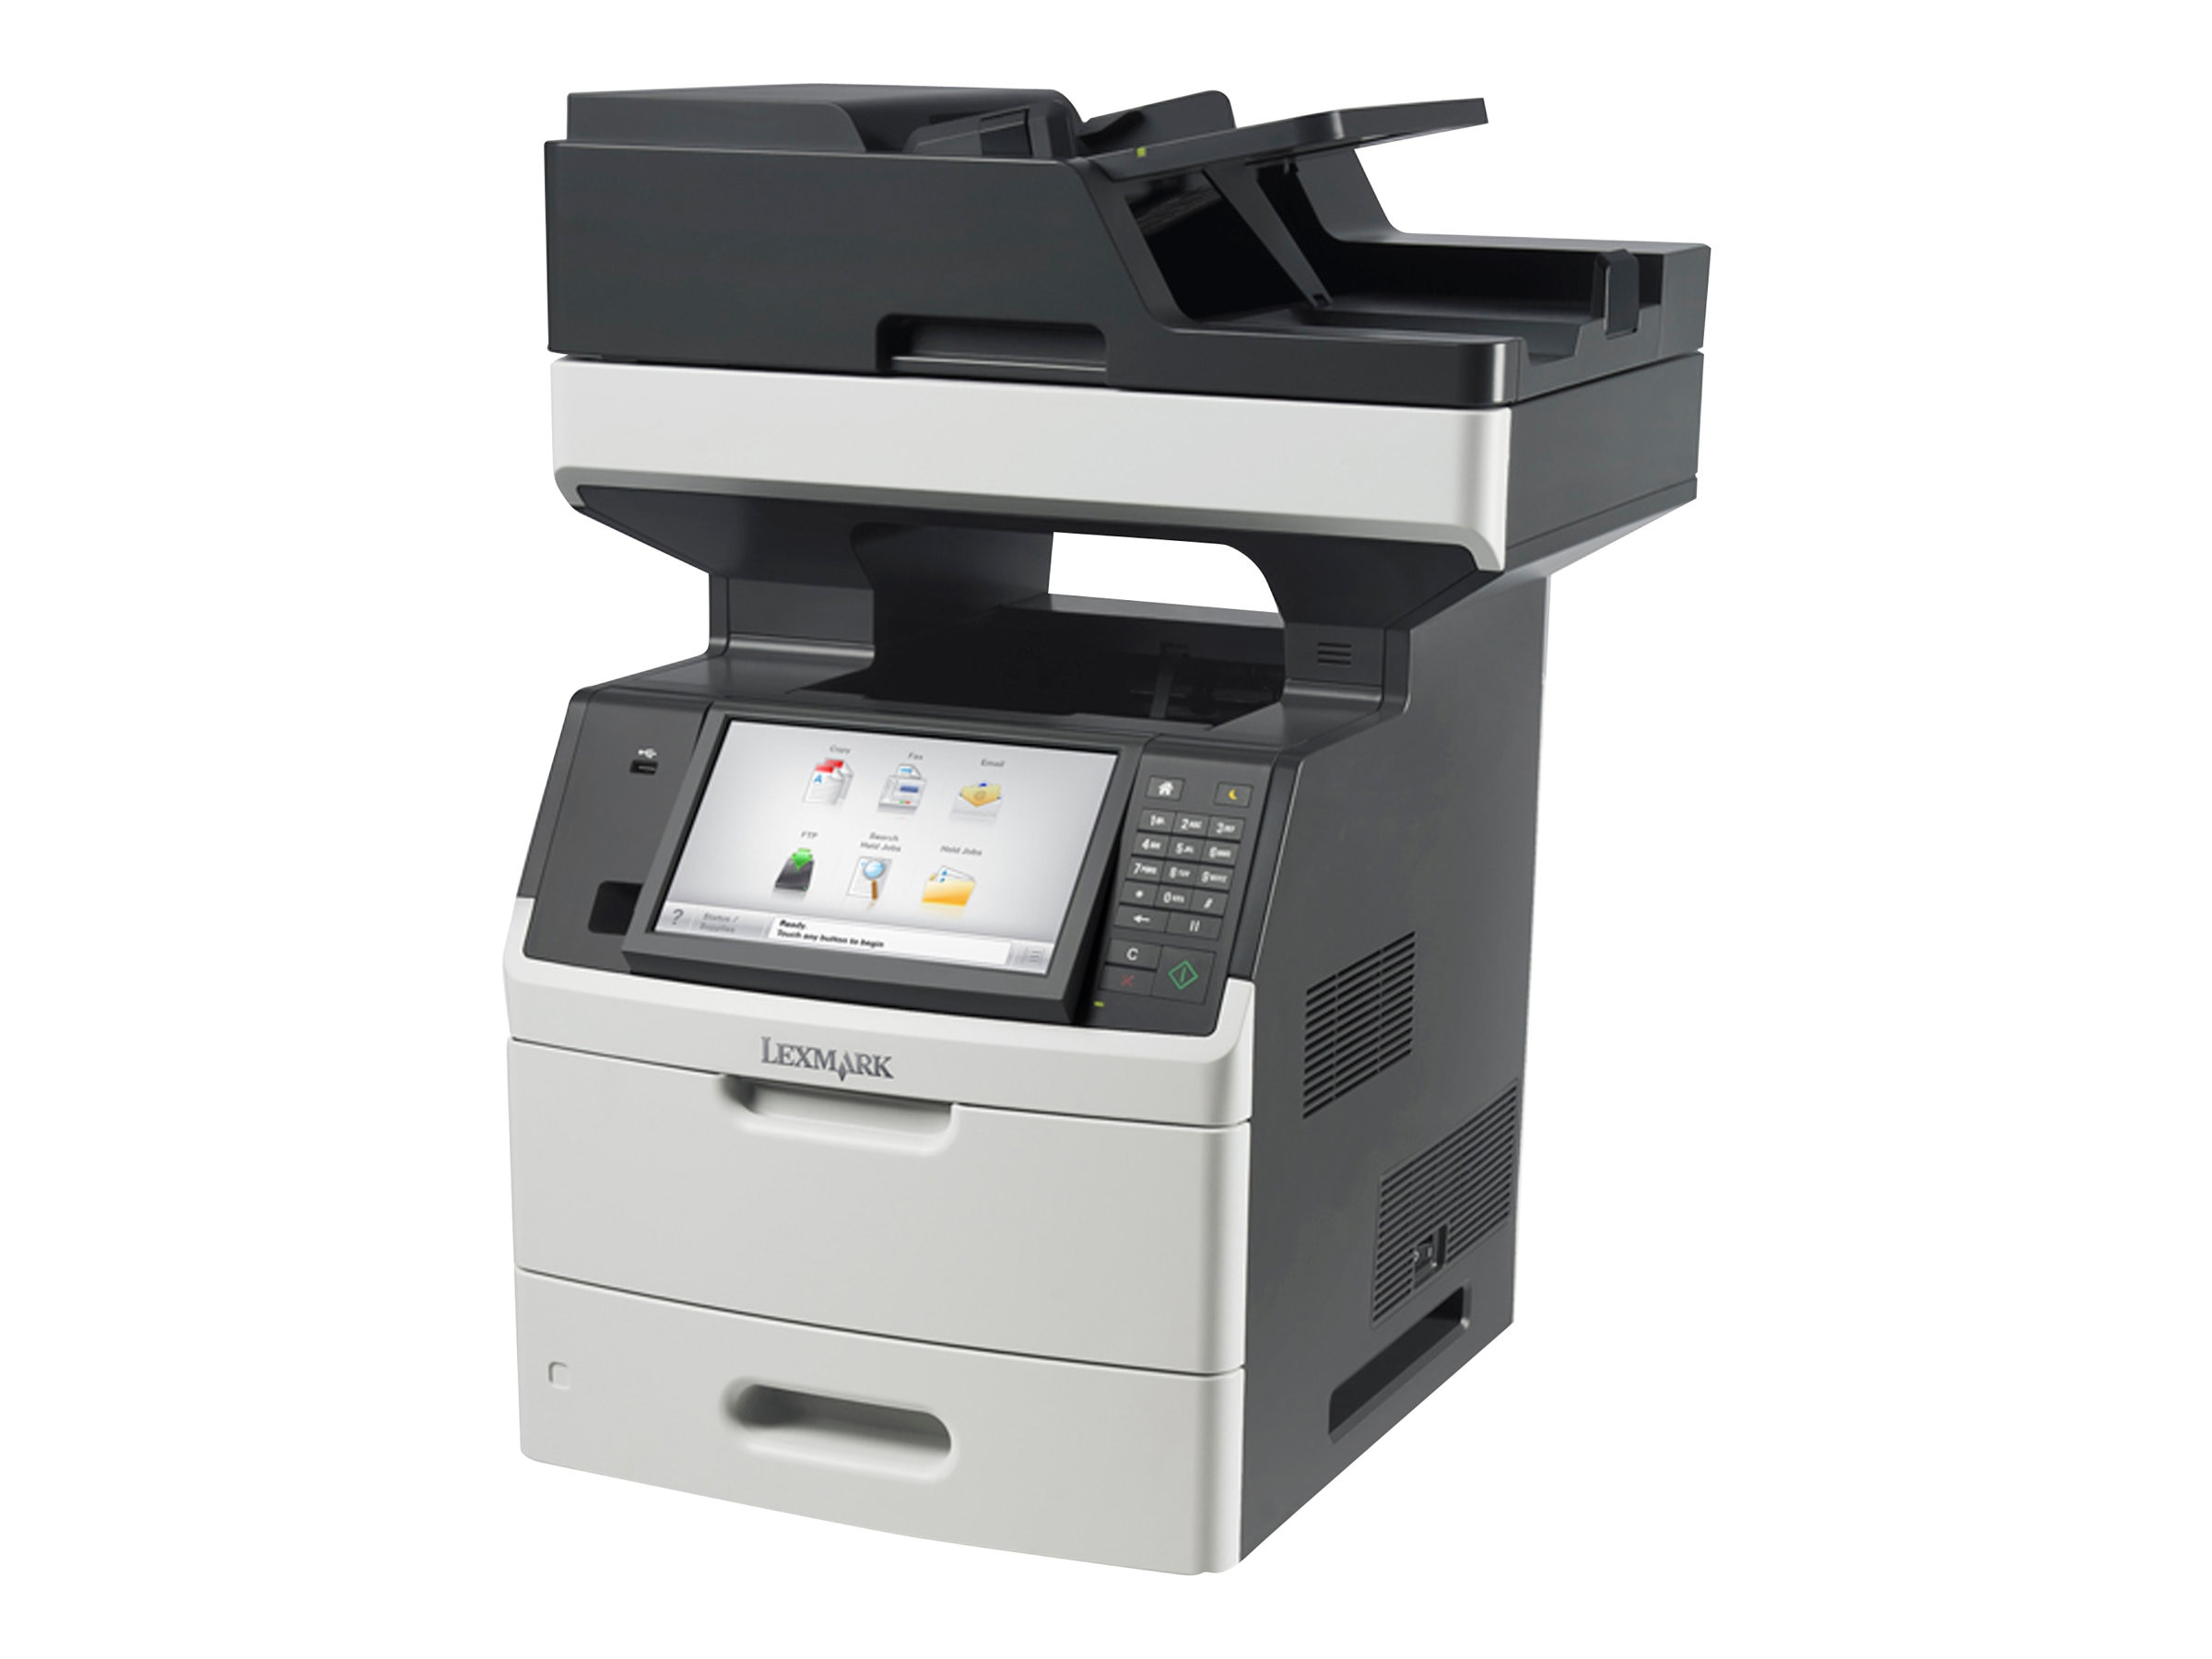 Lexmark MX711de Monochrome Laser Multifunction Printer